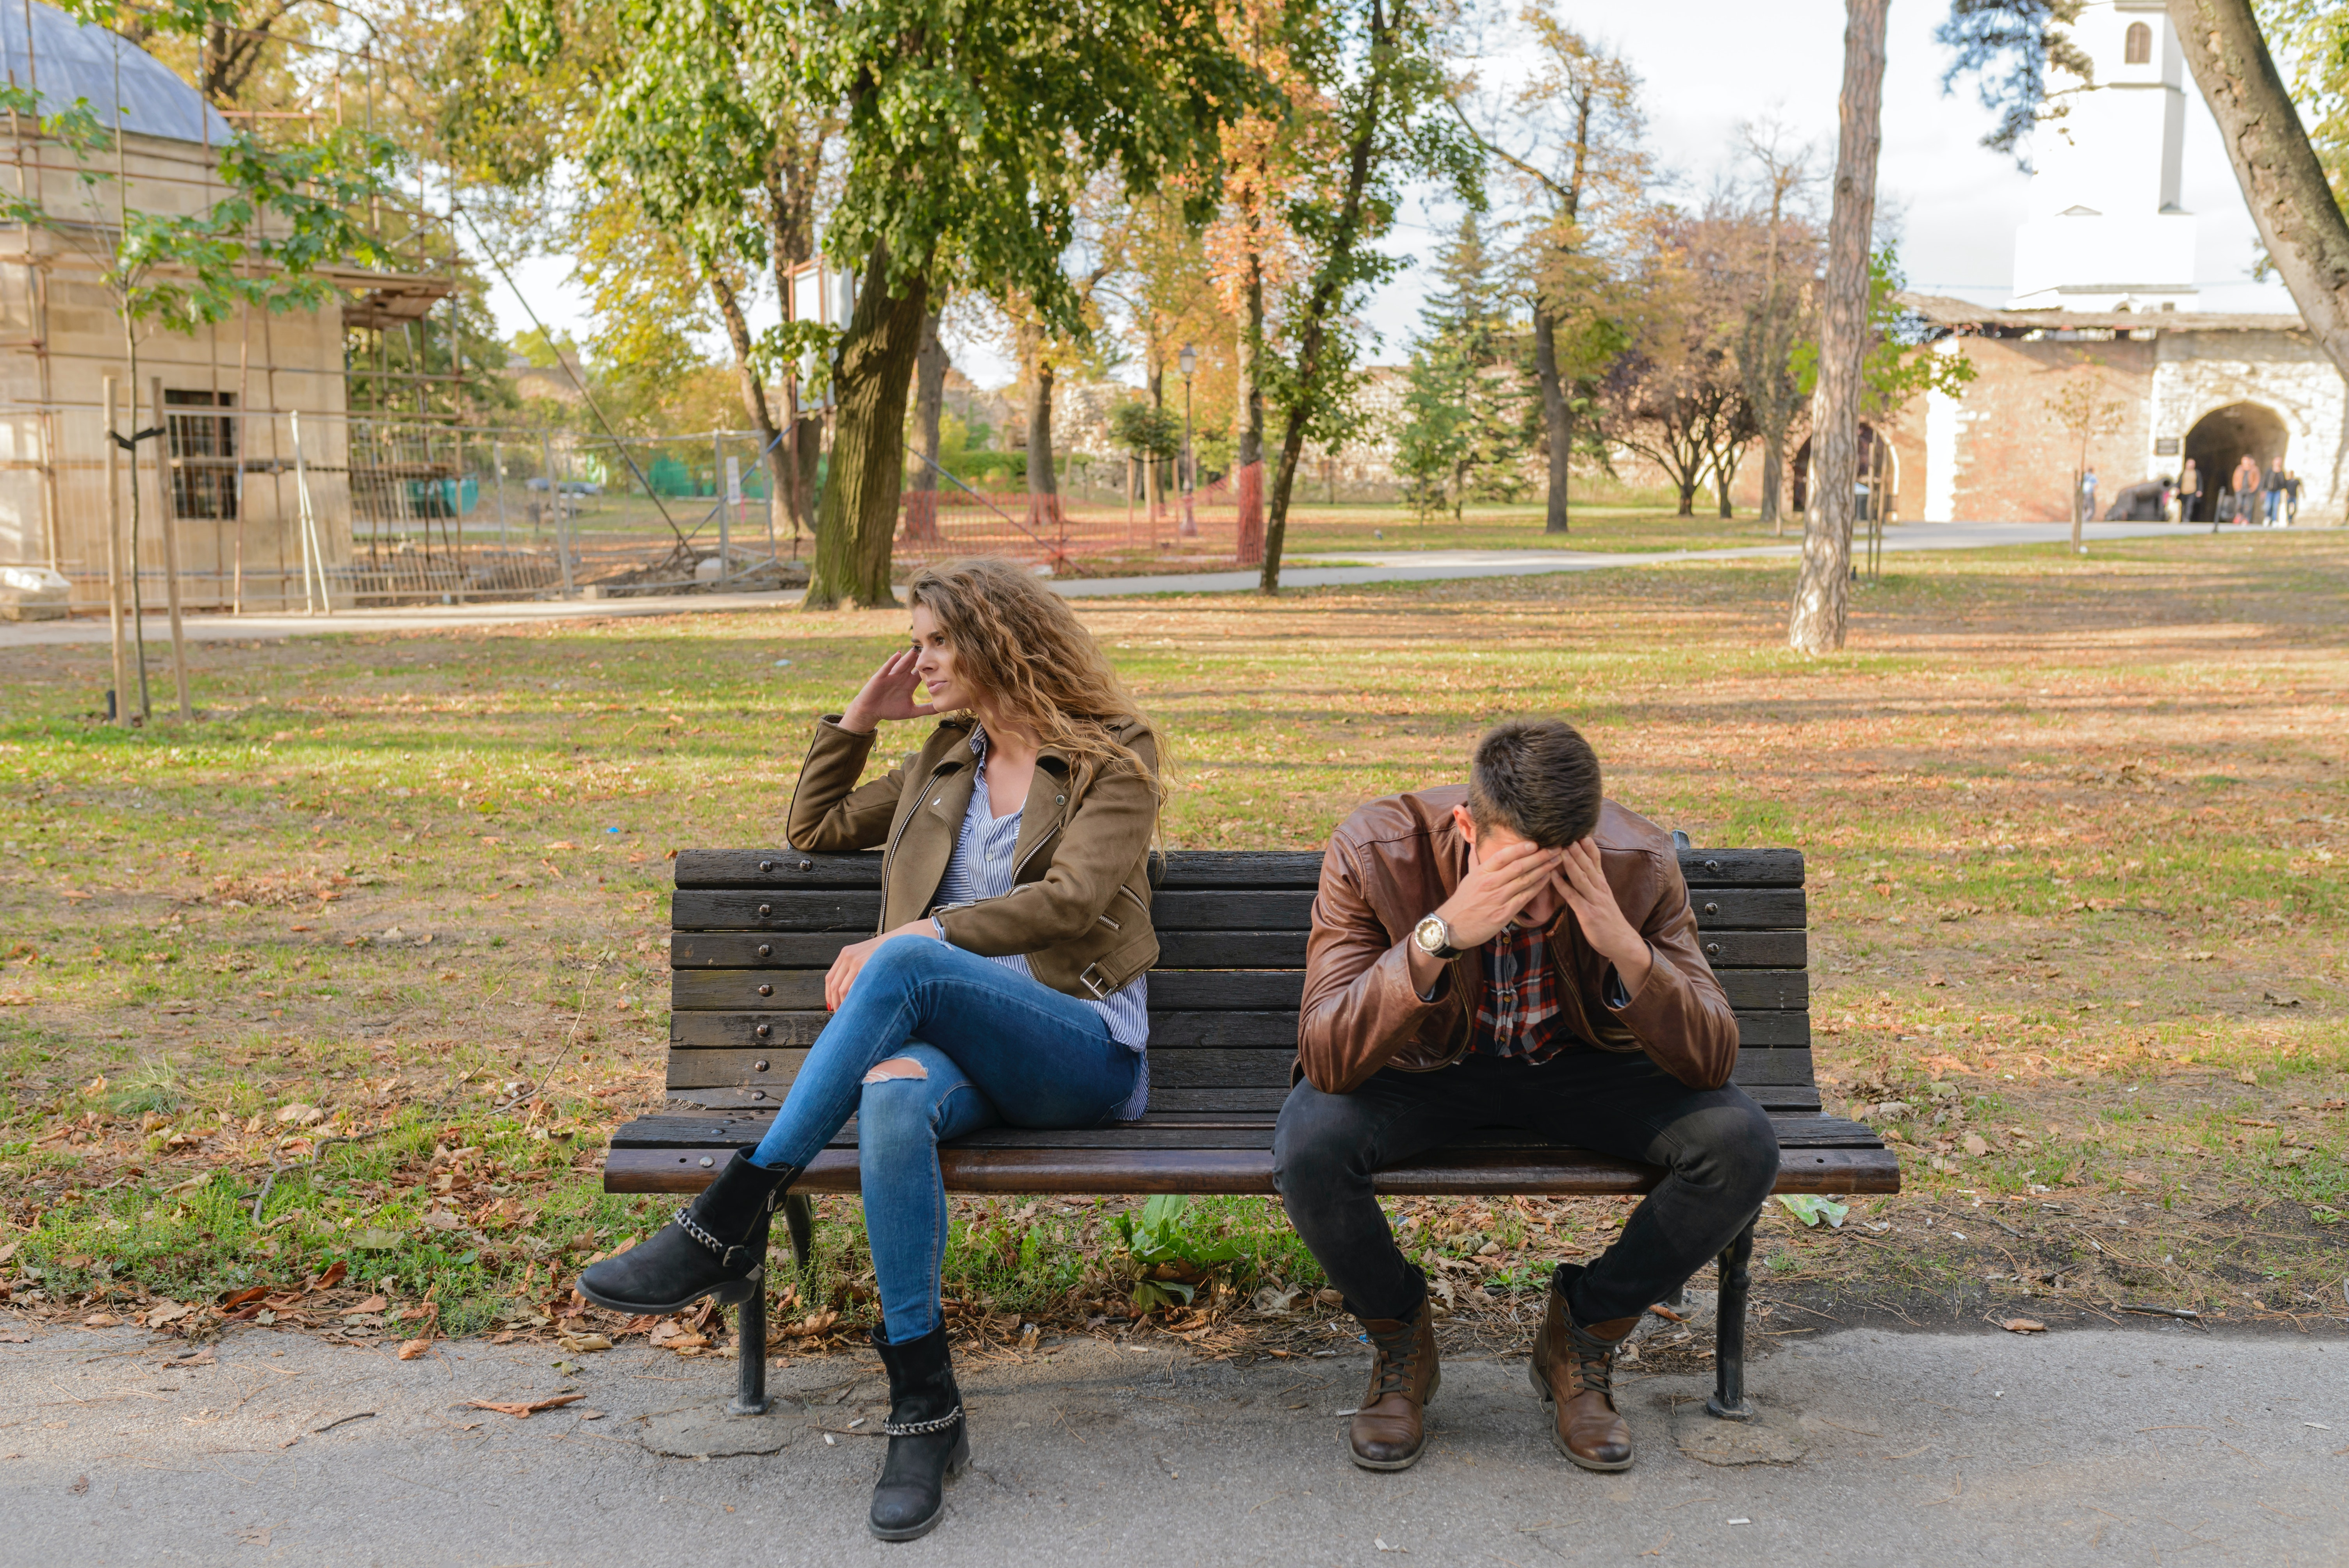 Stop taking loans as they can damage relationships